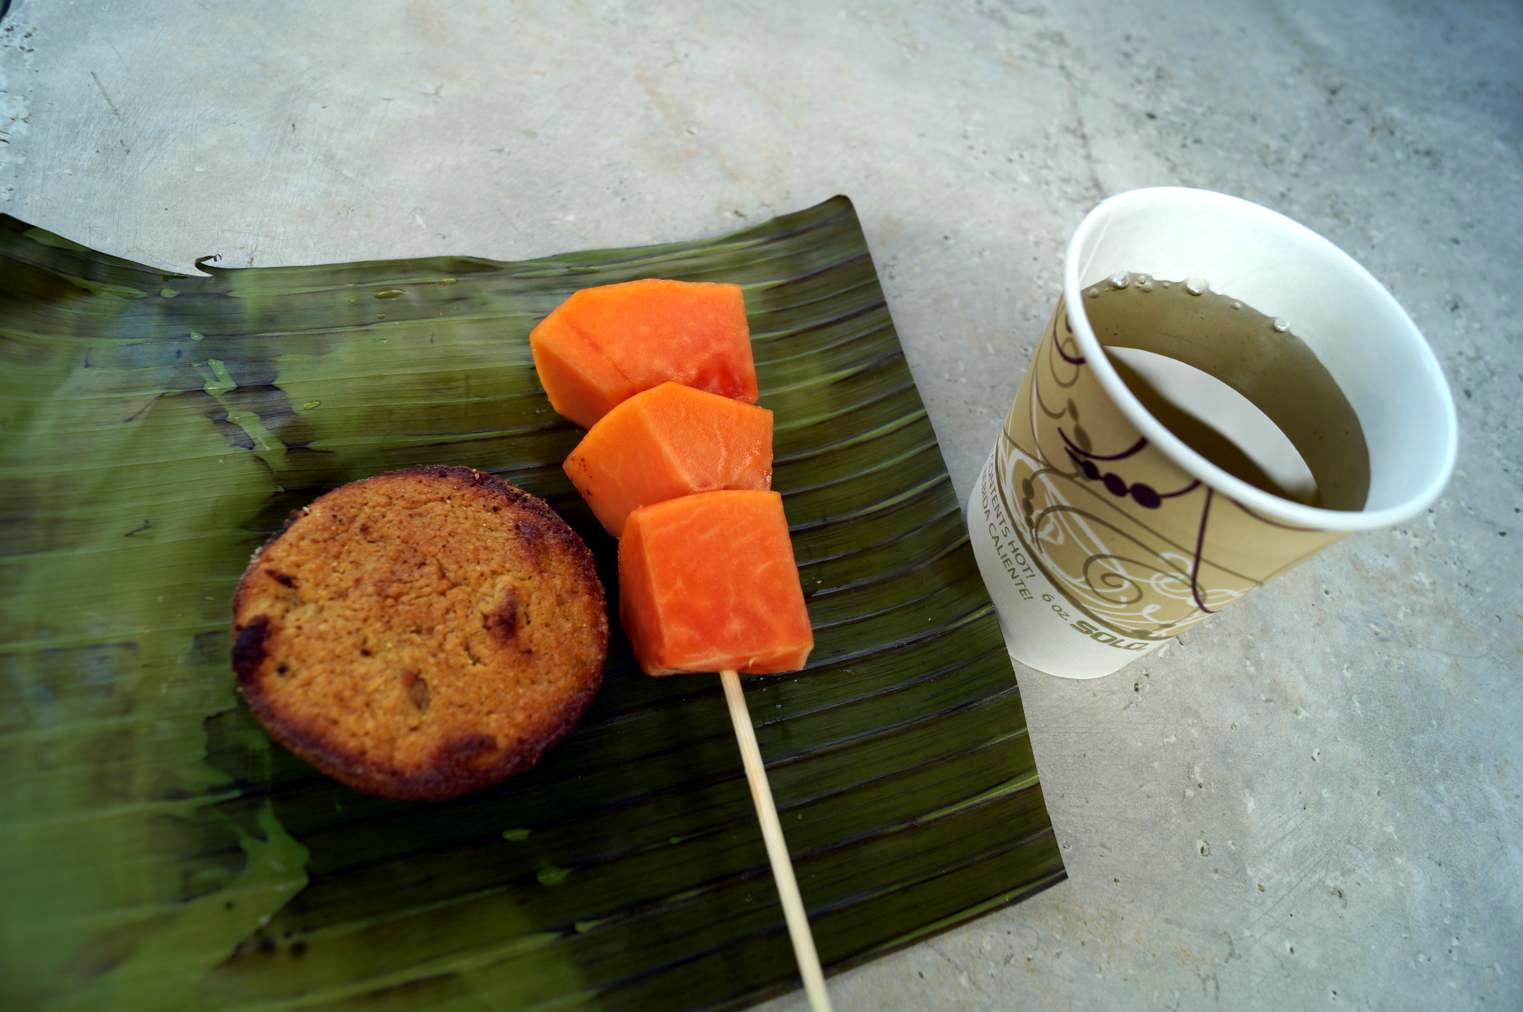 A mid-morning snack. They all looked like this: baked good (this time, rice/corn flour base and I think it was orange) and fresh fruit on a skewer (papaya, here) served on a fresh banana leaf with either coffee or a chilled herb + fruit infusion